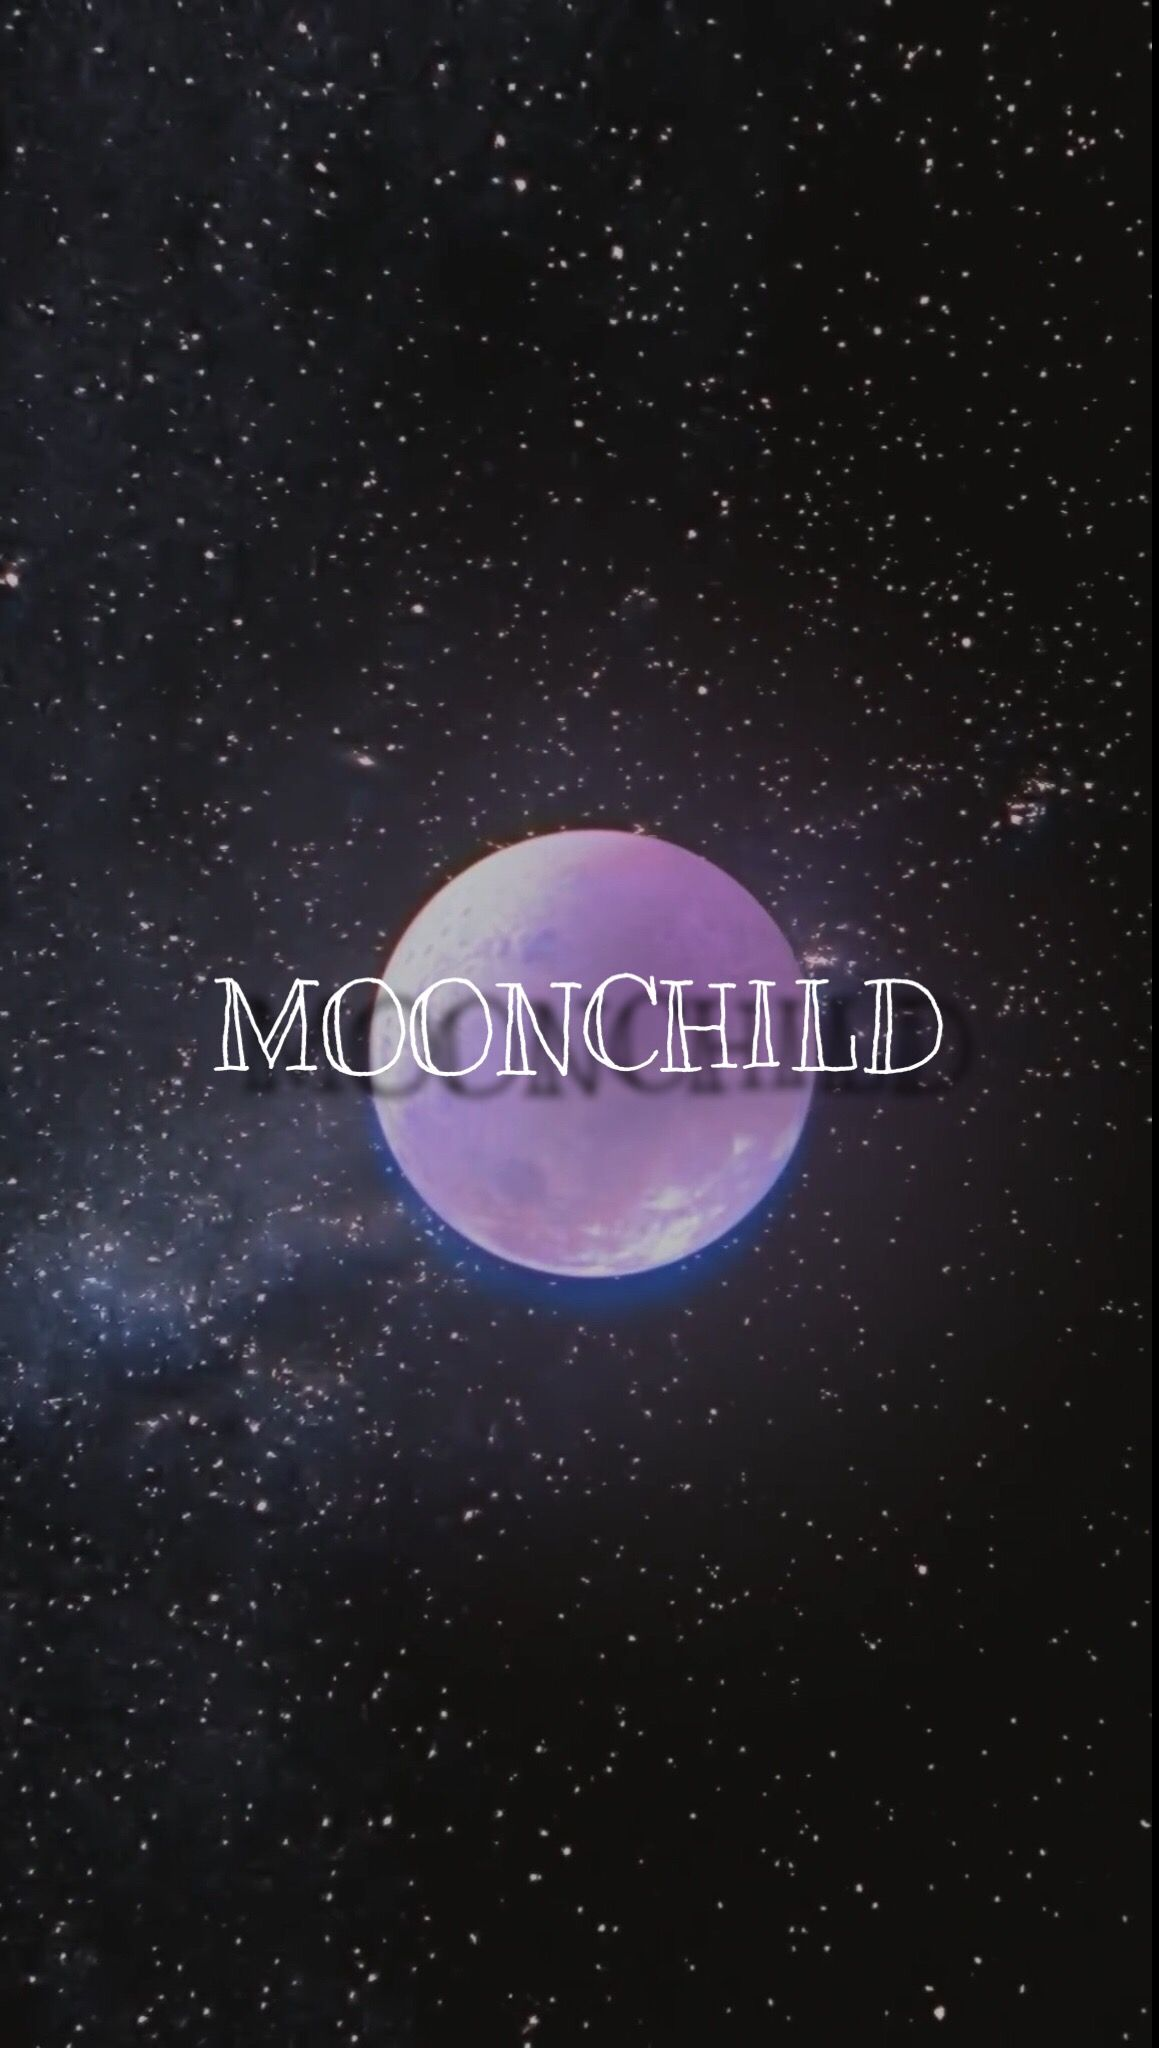 Pin On That Moonchild